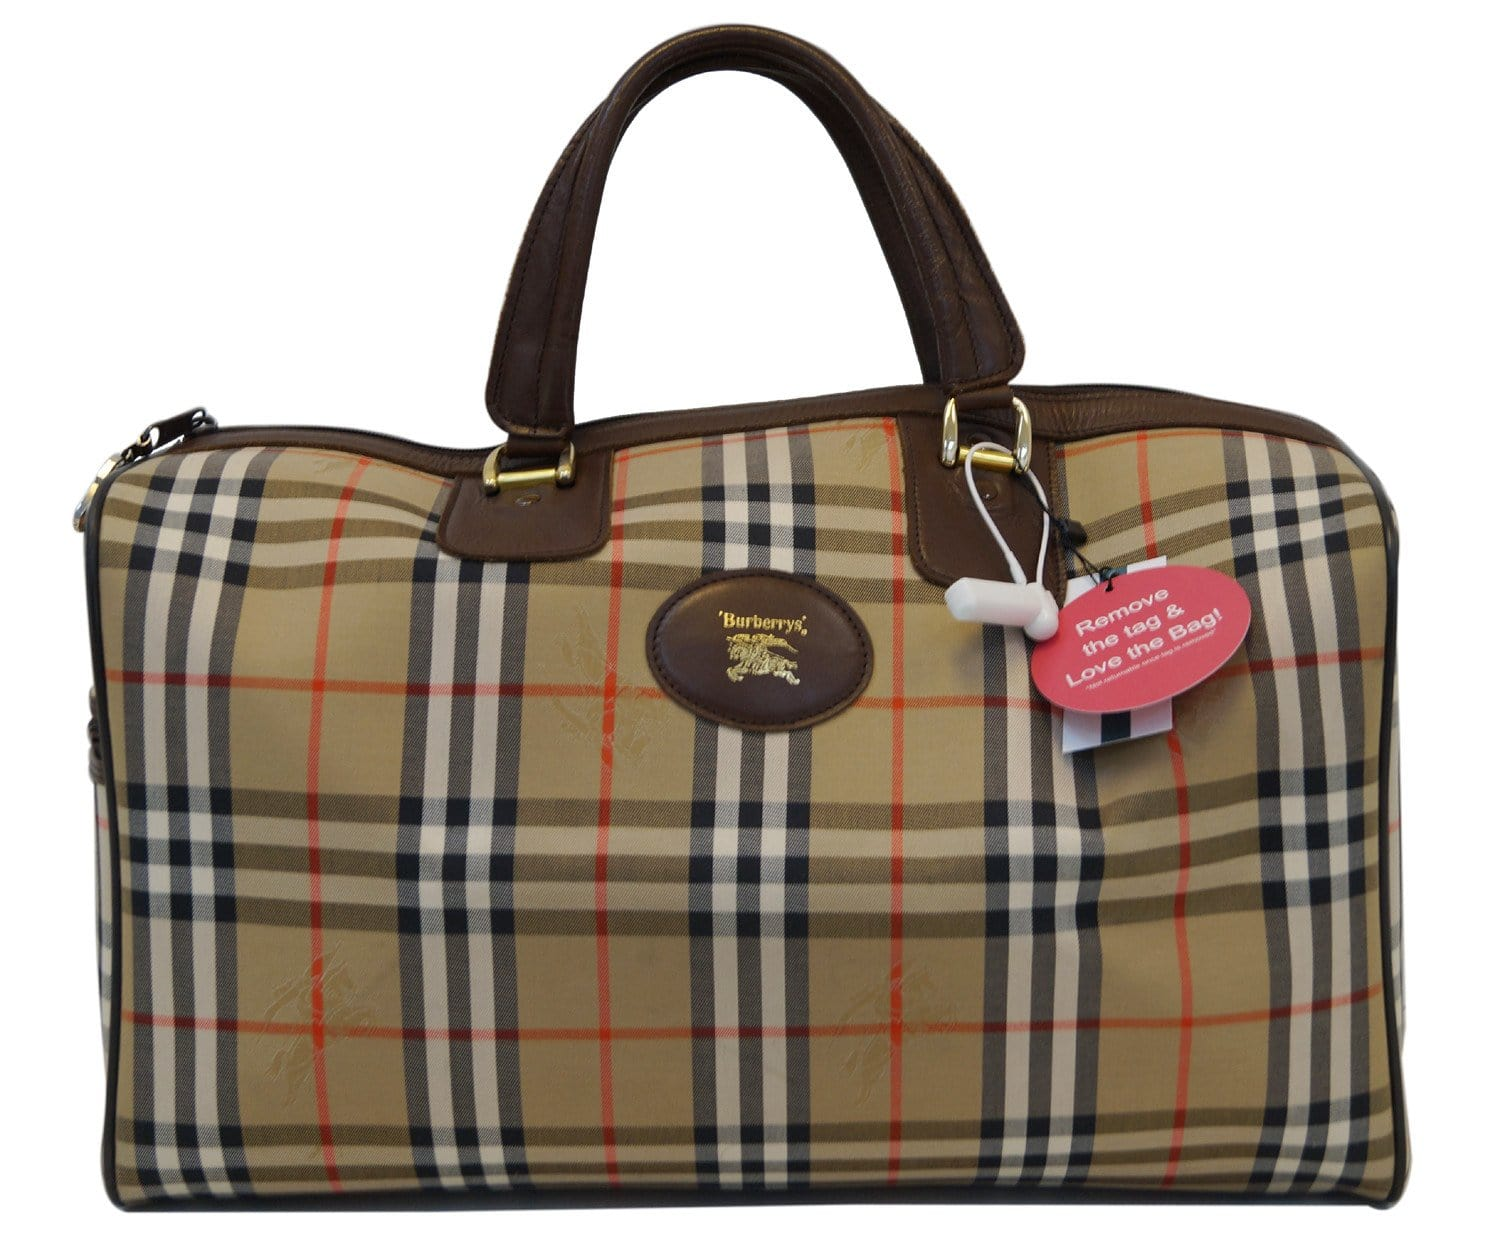 bf171551f35c Authentic Burberry Nova Check Canvas Leather Brown Beige Travel Bag TT1171